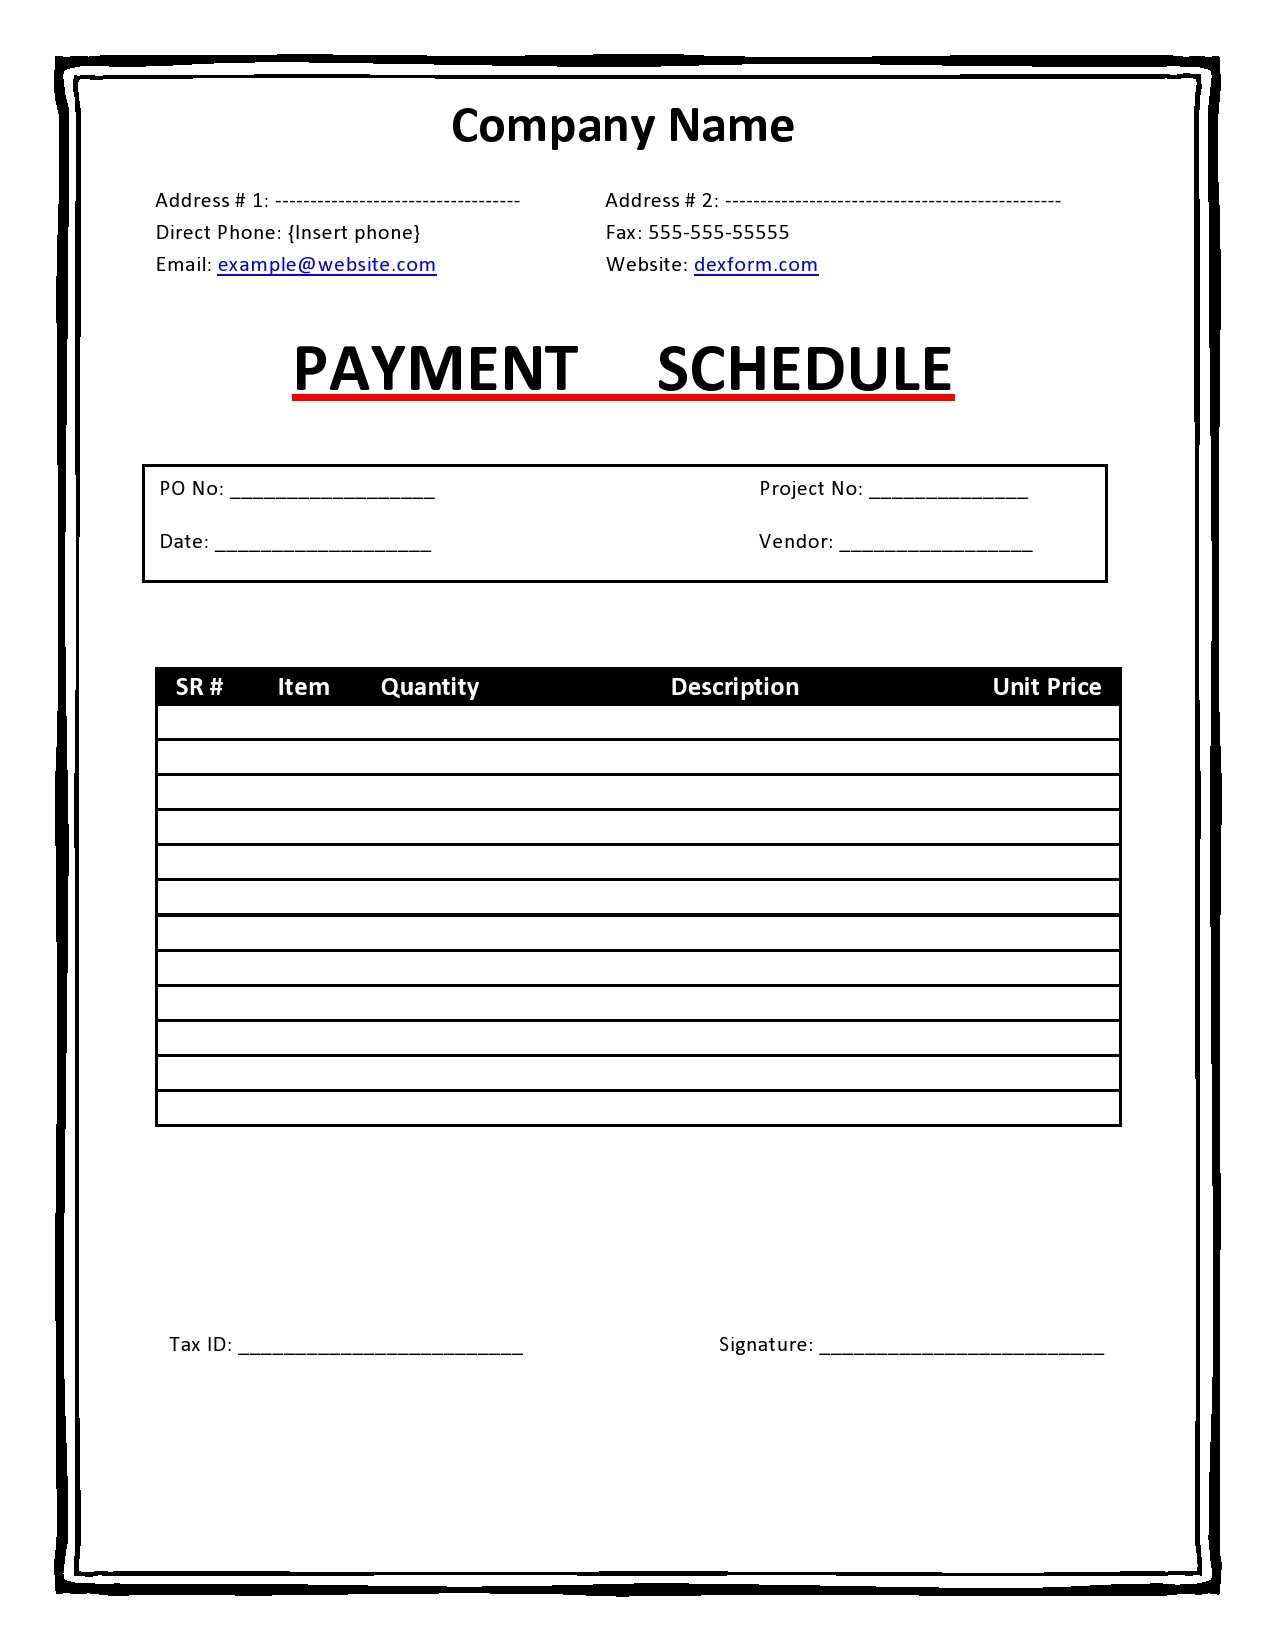 Free payment schedule template 24